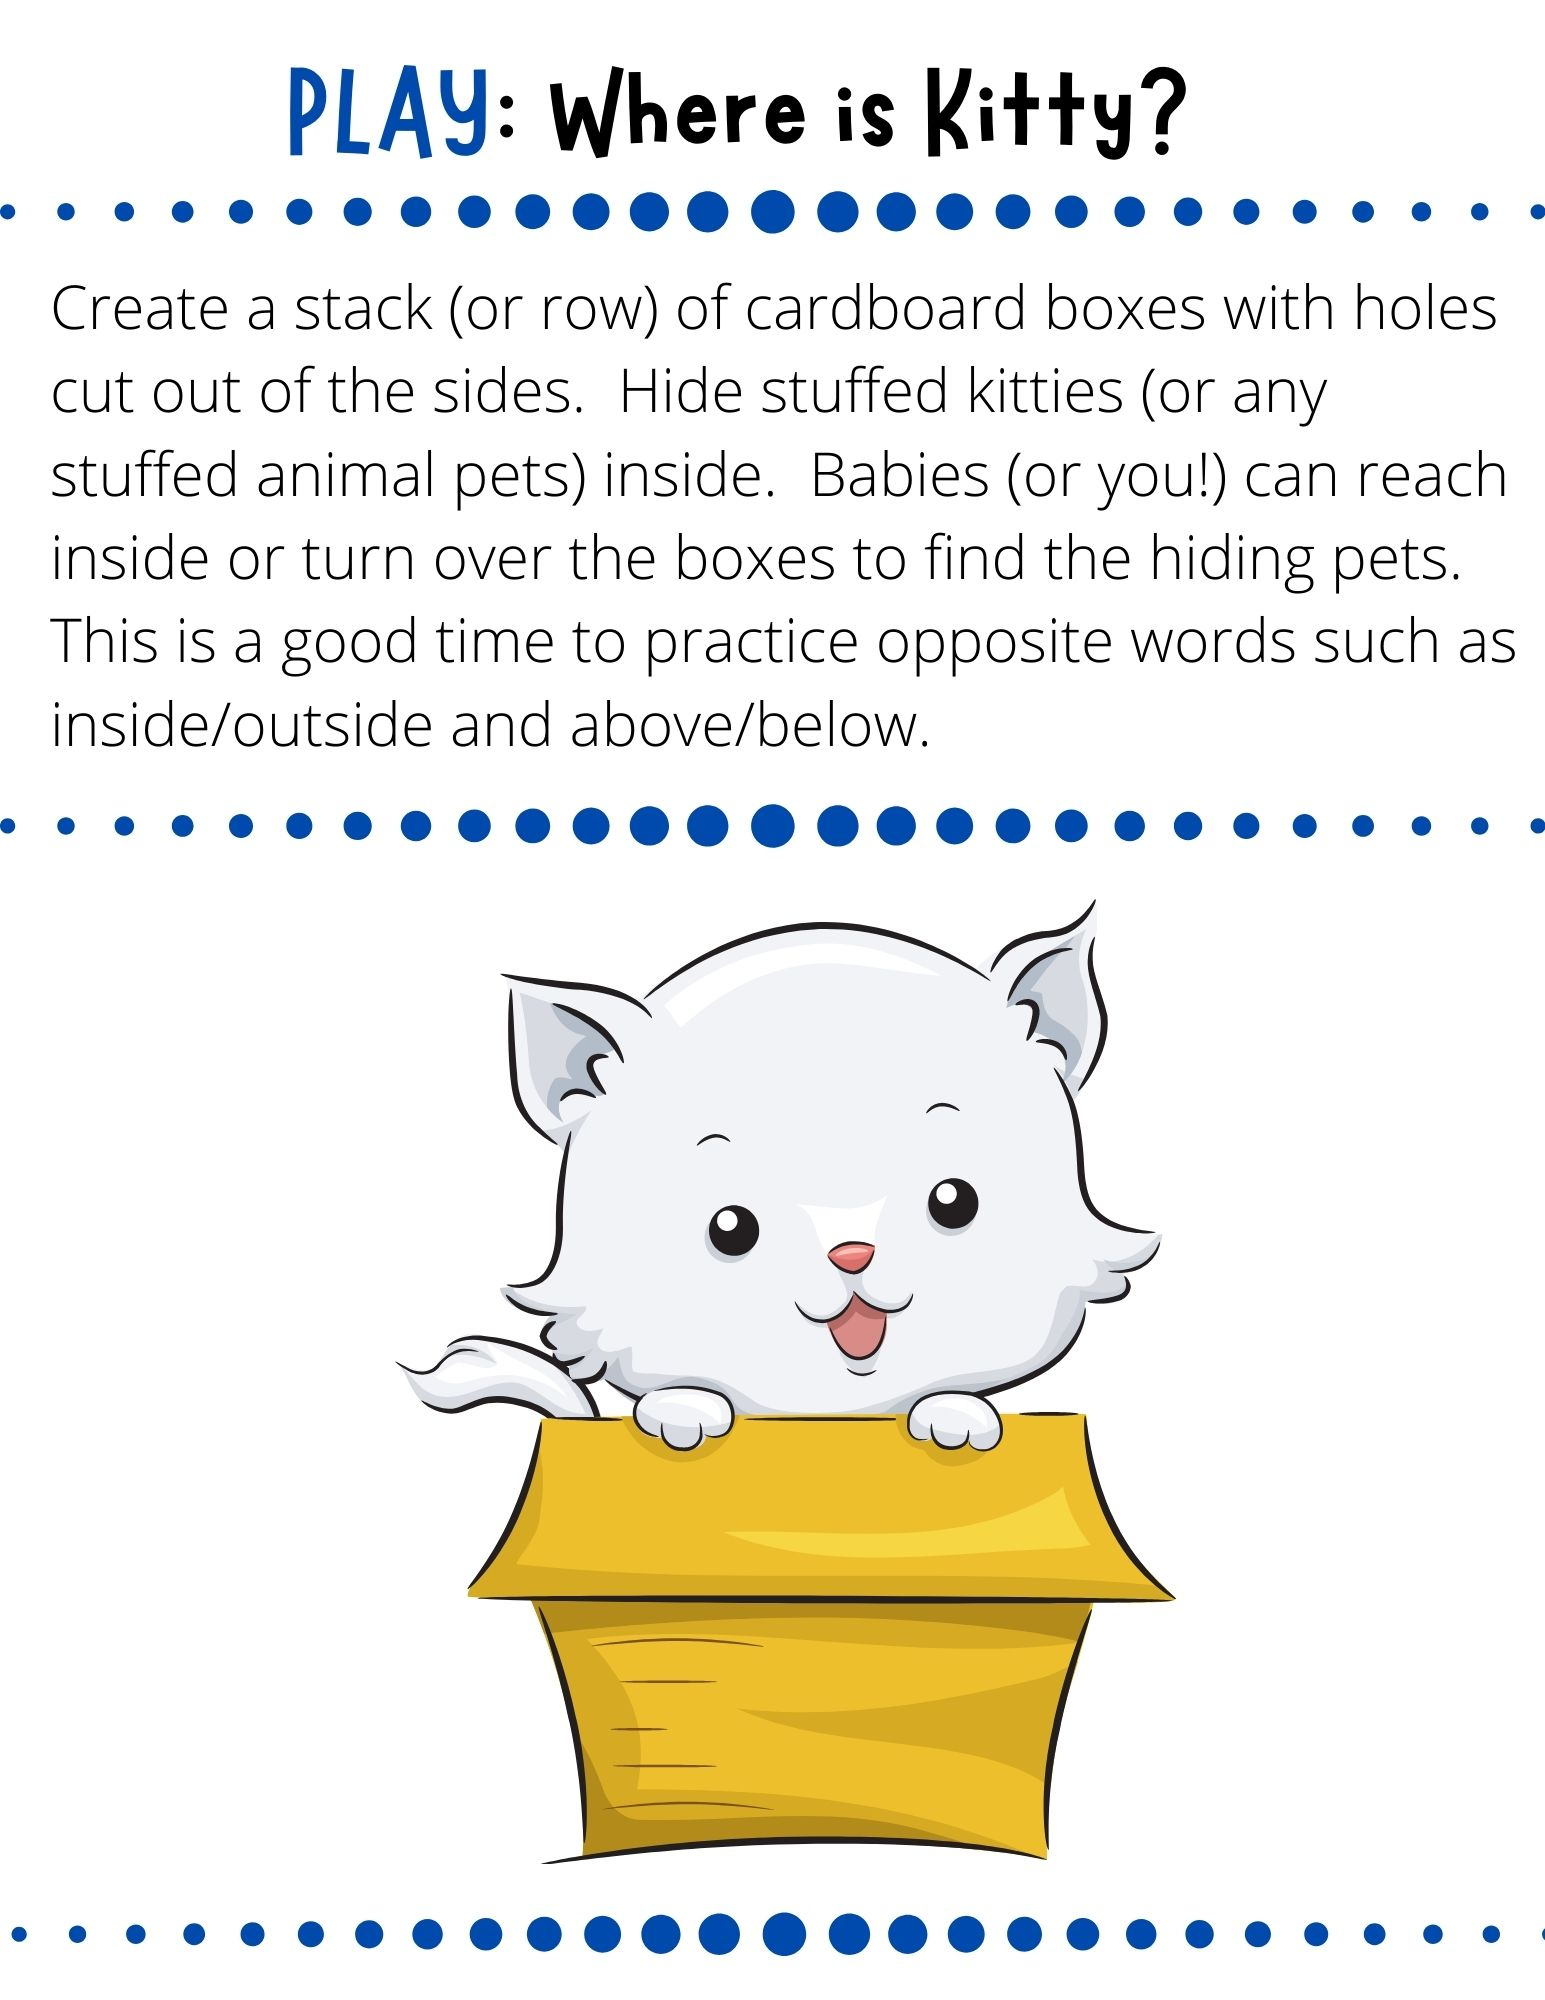 Create a stack (or row) of cardboard boxes with holes cut out of the sides.  Hide stuffed kitties (or any stuffed animal pets) inside.  Babies (or you!) can reach inside or turn over the boxes to find the hiding pets.  This is a good time to practice opposite words such as inside/outside and above/below.